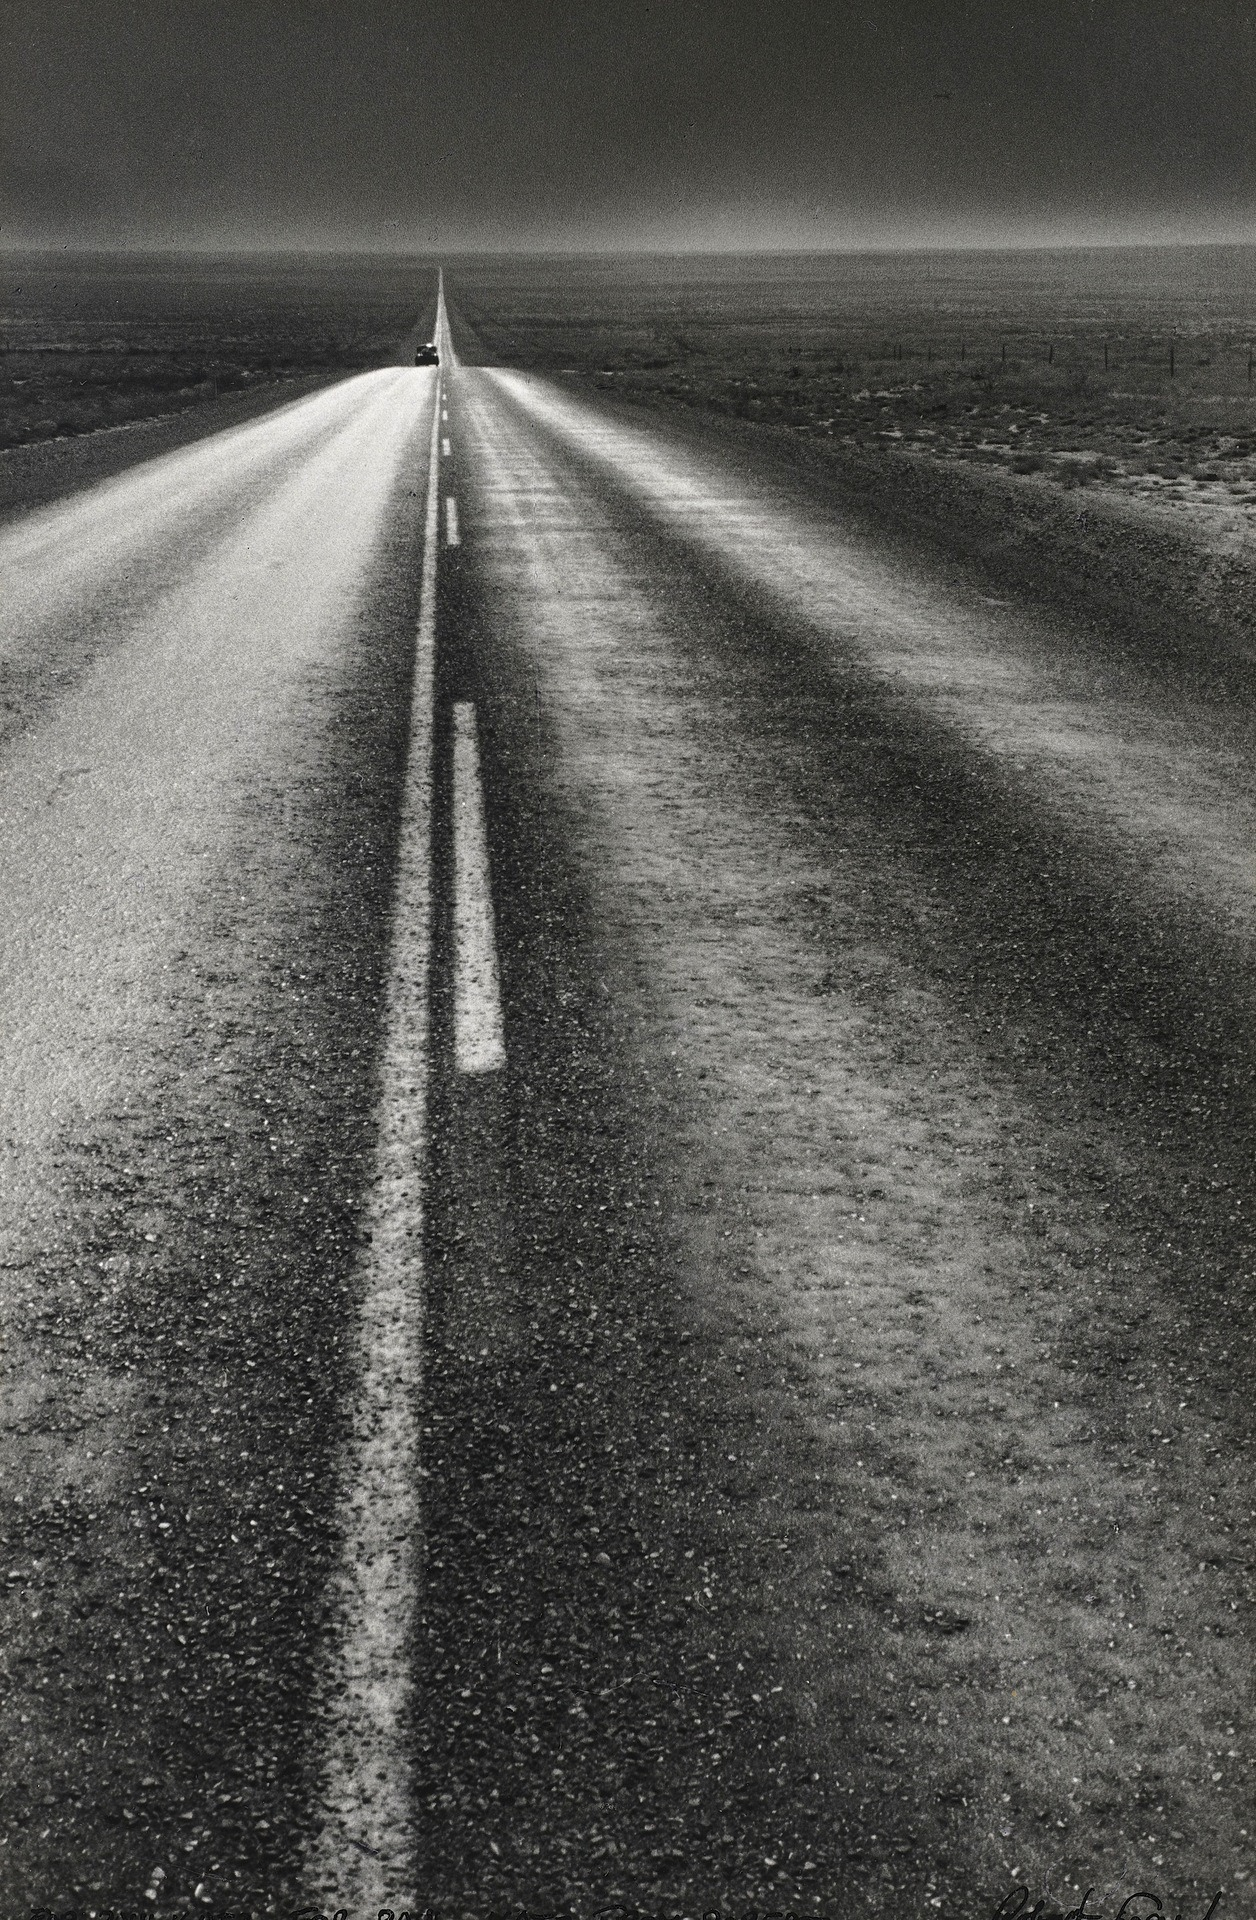 luzfosca:  Robert Frank U.S. 285, New Mexico, 1955 From The Americans